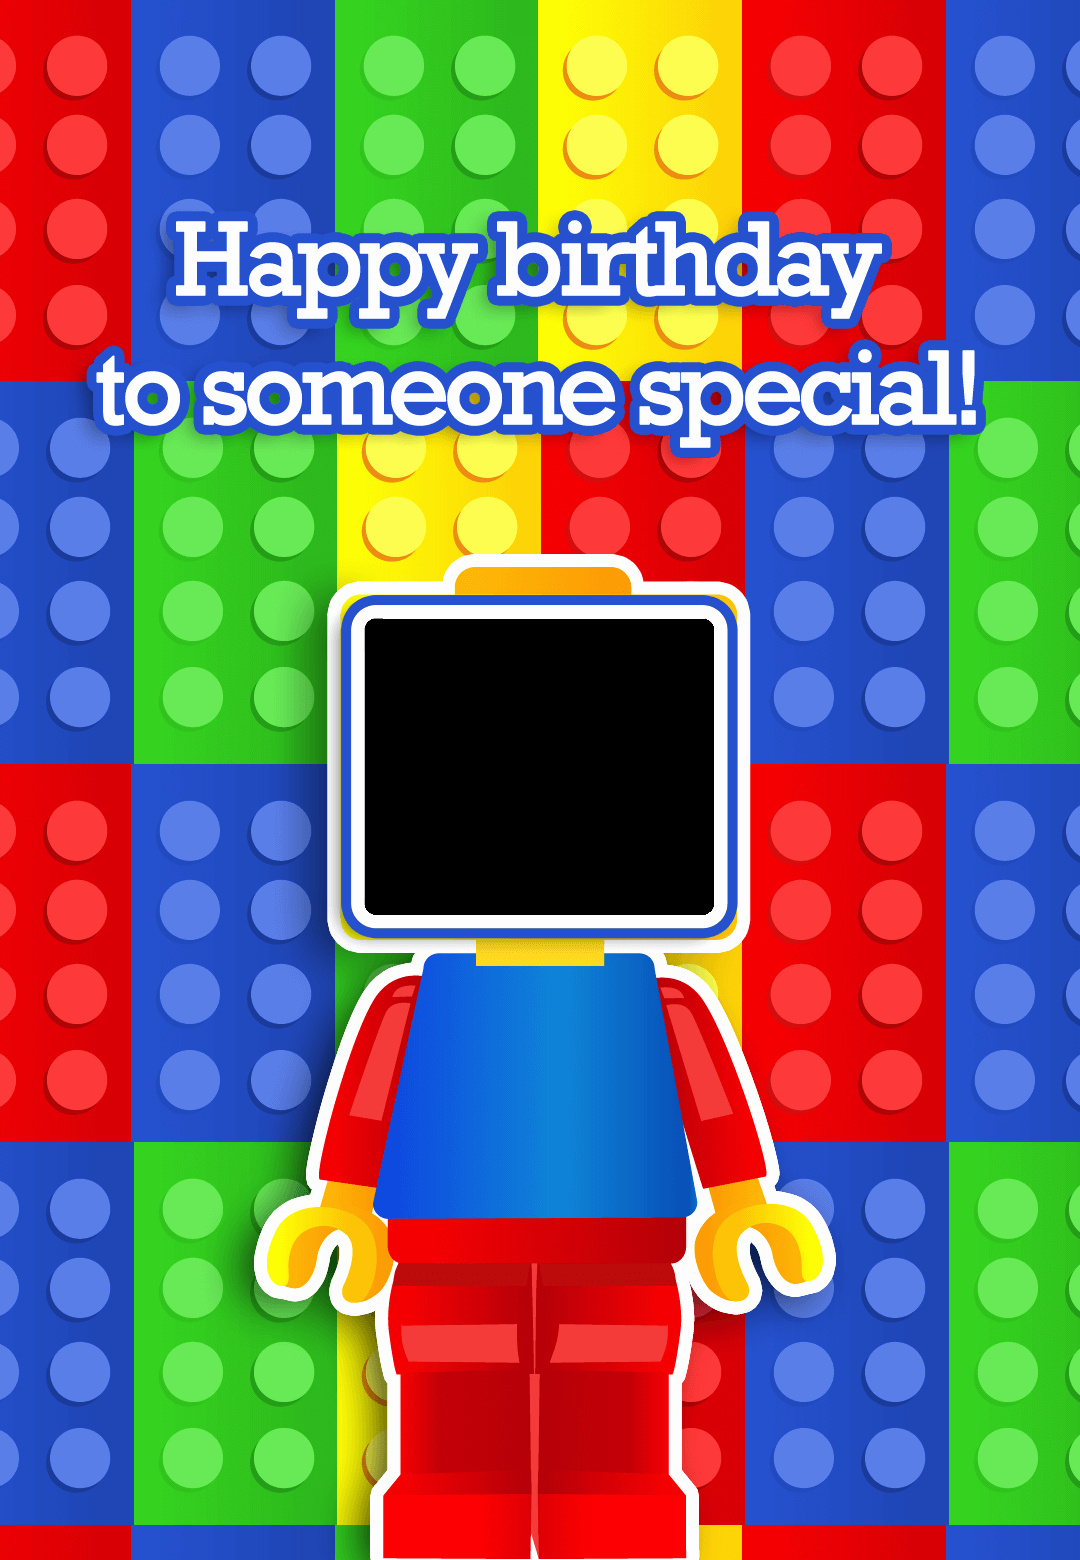 Lego Birthday Card Printable Elegant to someone Special Birthday Card Free